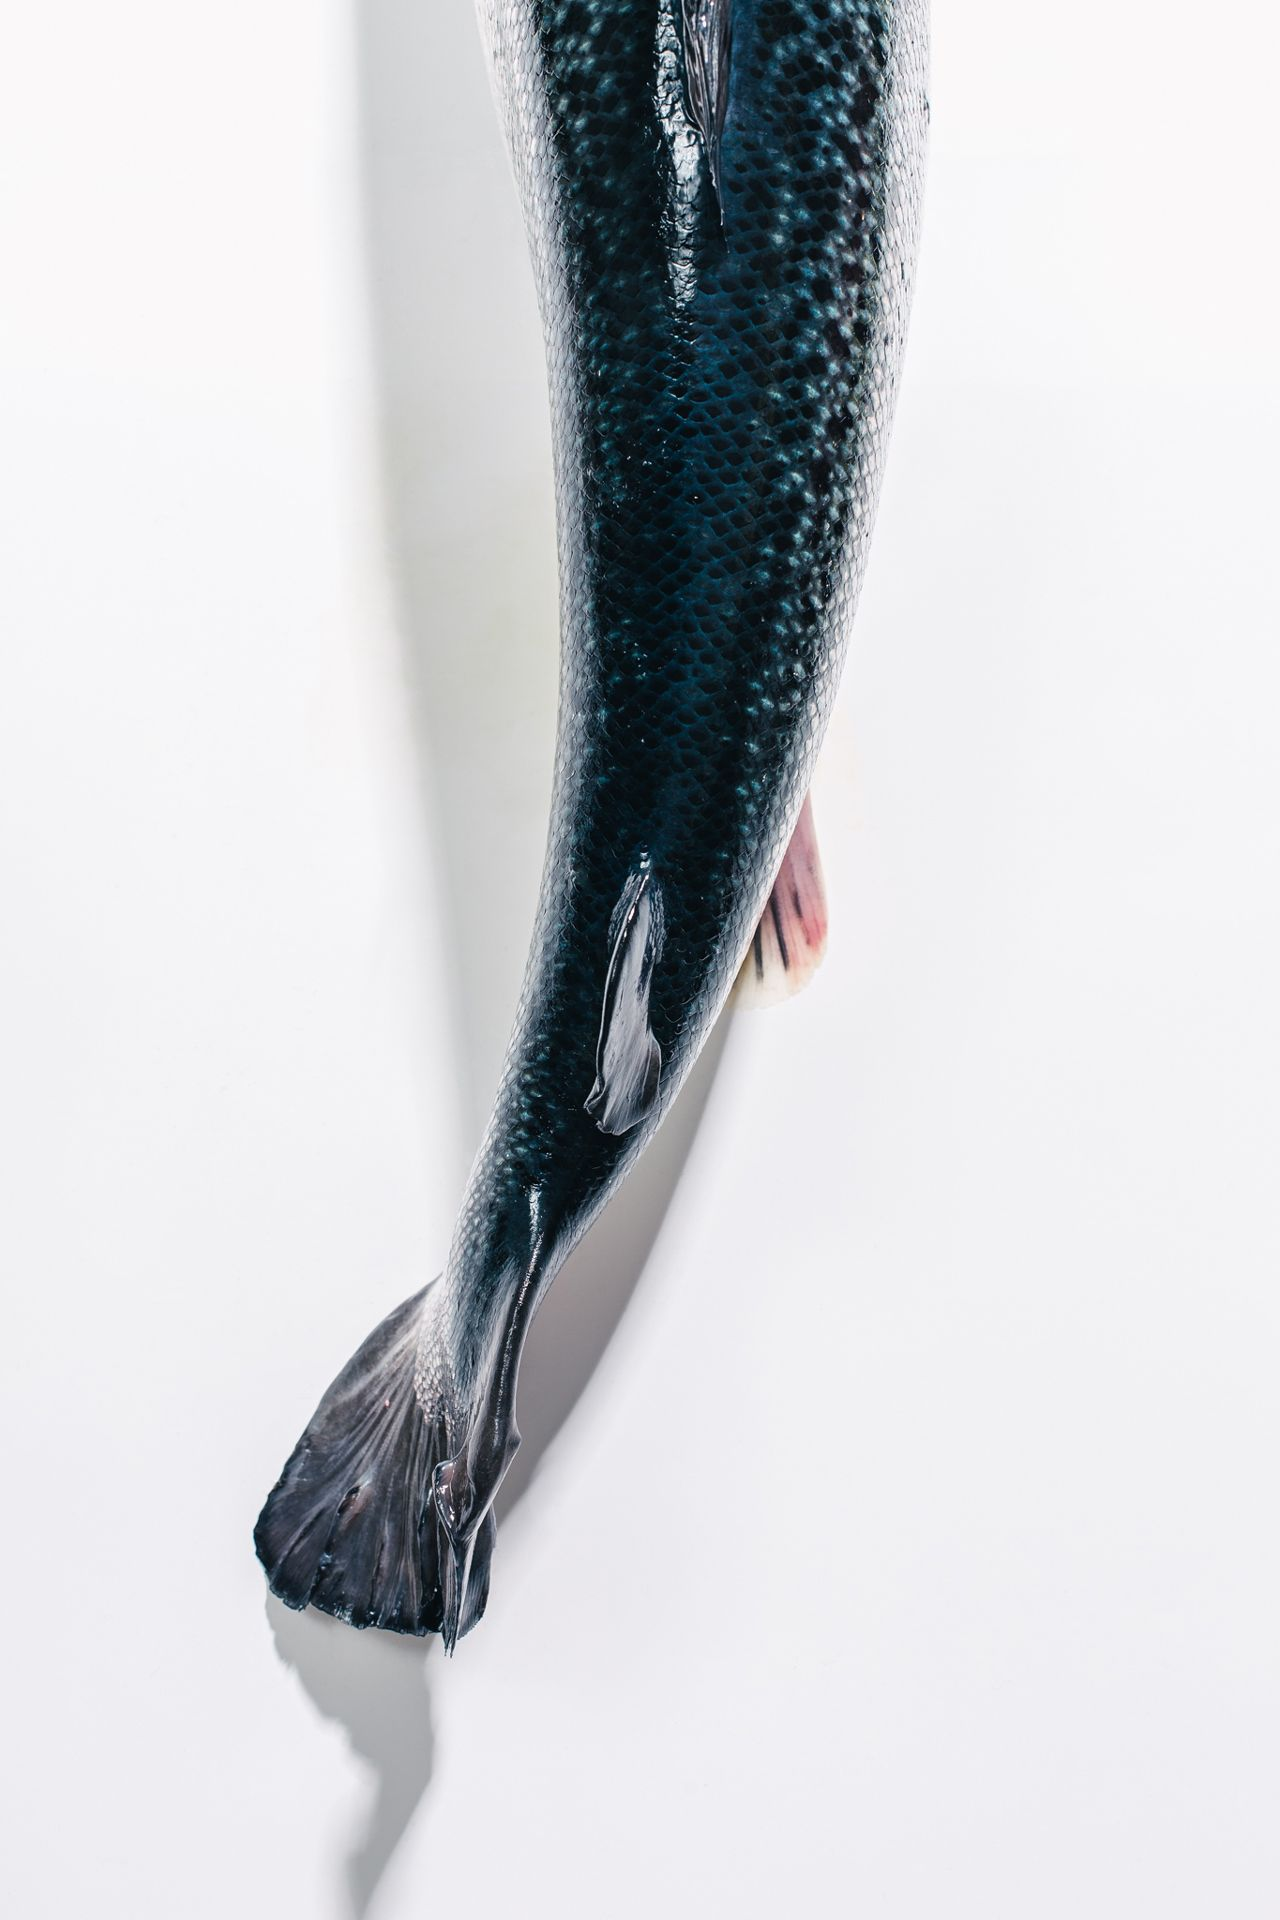 tail of genetically modified salmon by Alexi Hobbs at AquaBounty for Bloomberg Businessweek